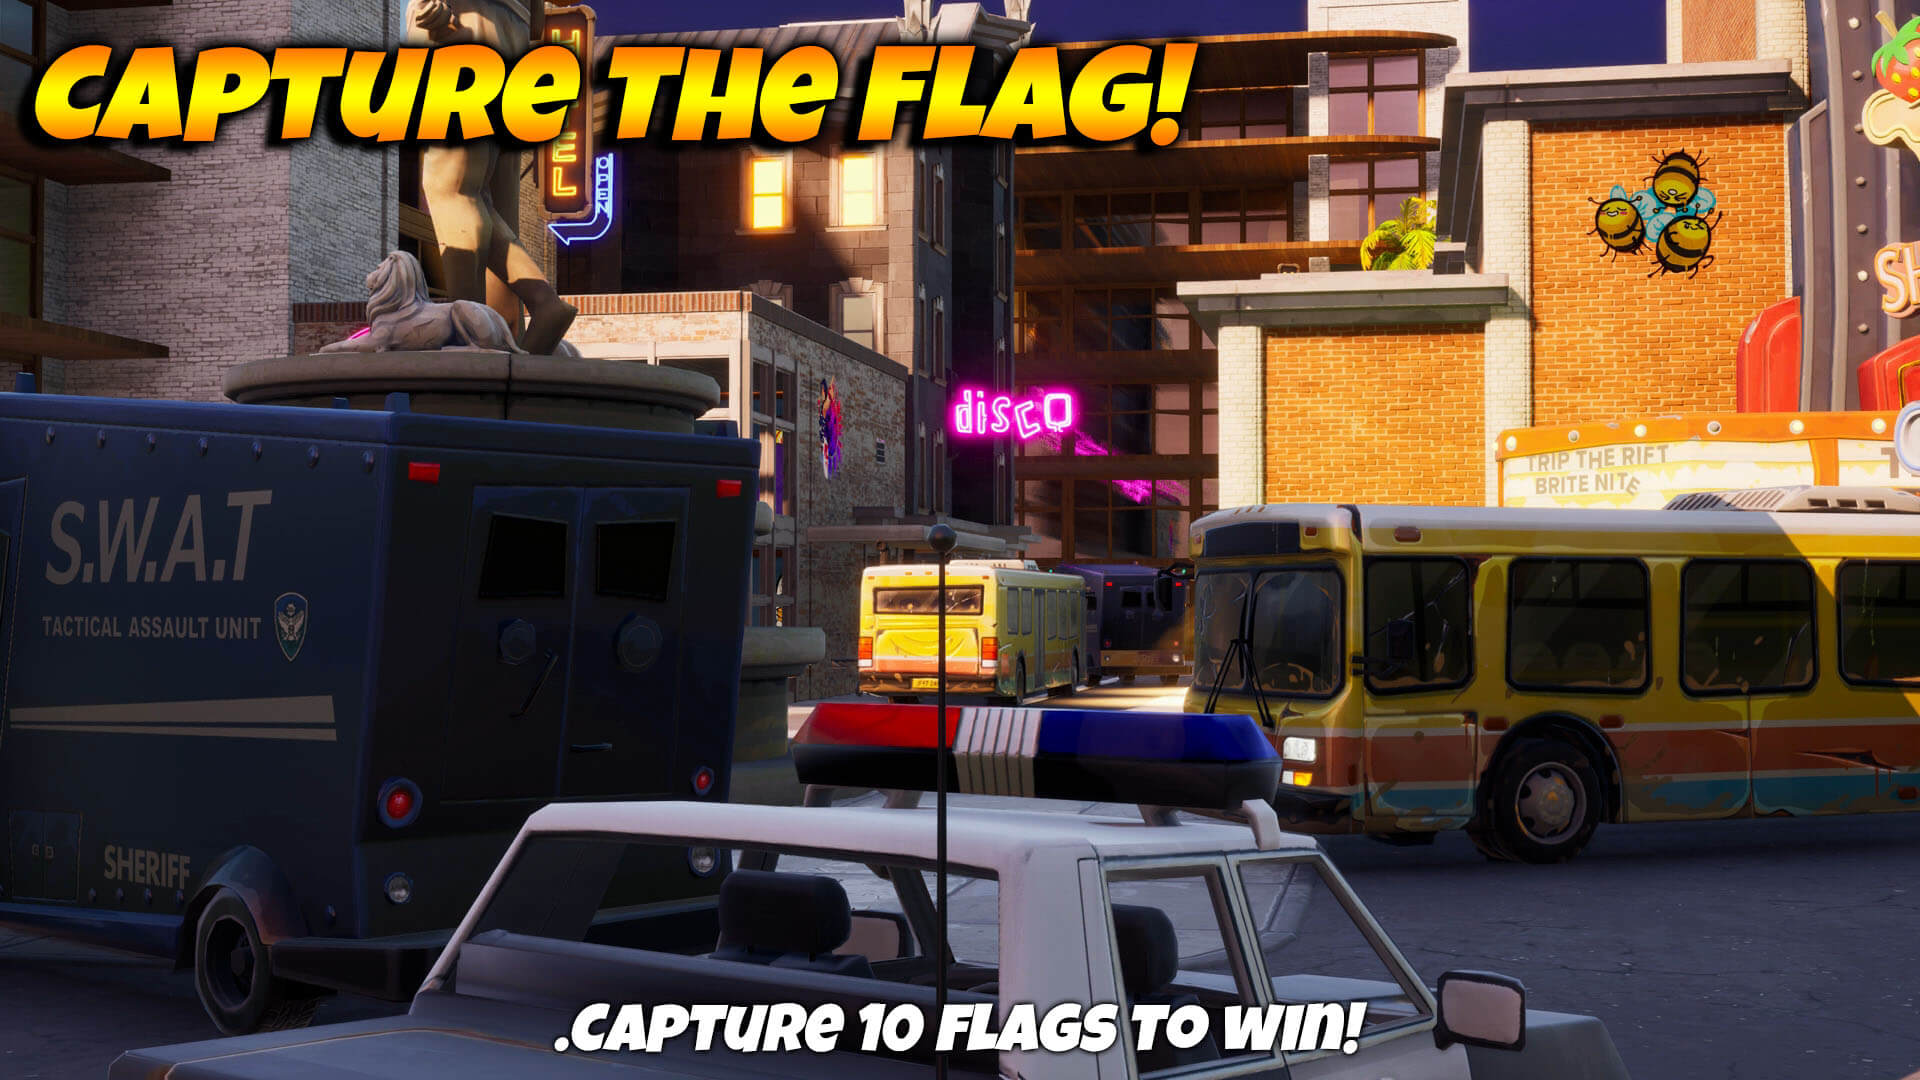 CAPTURE THE FLAG! - CYNICAL CITY!